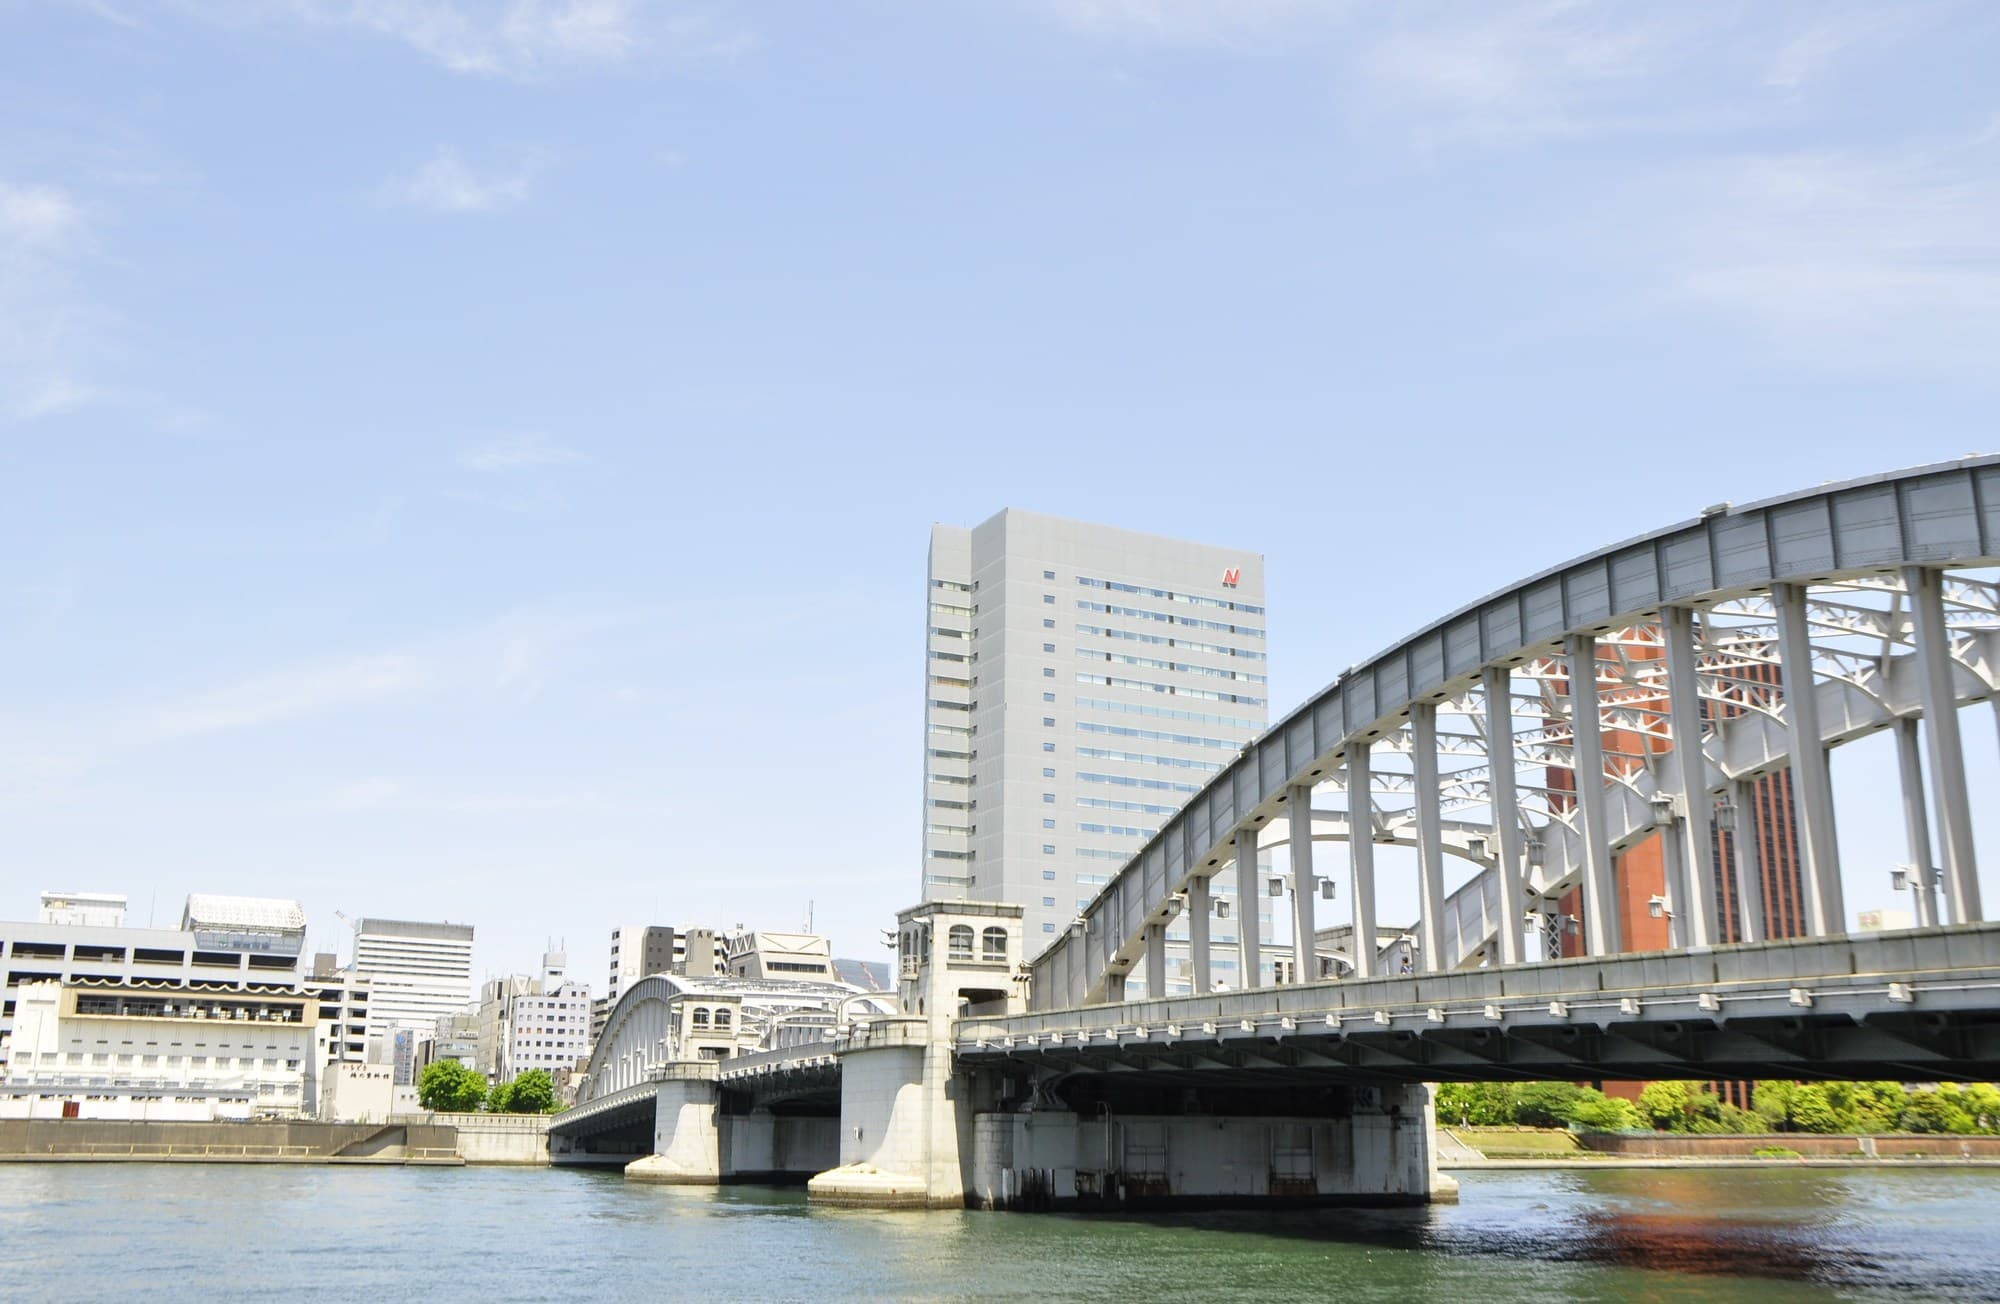 Kachidoki-Bashi Bridge over Sumida River Is Illuminated at Night